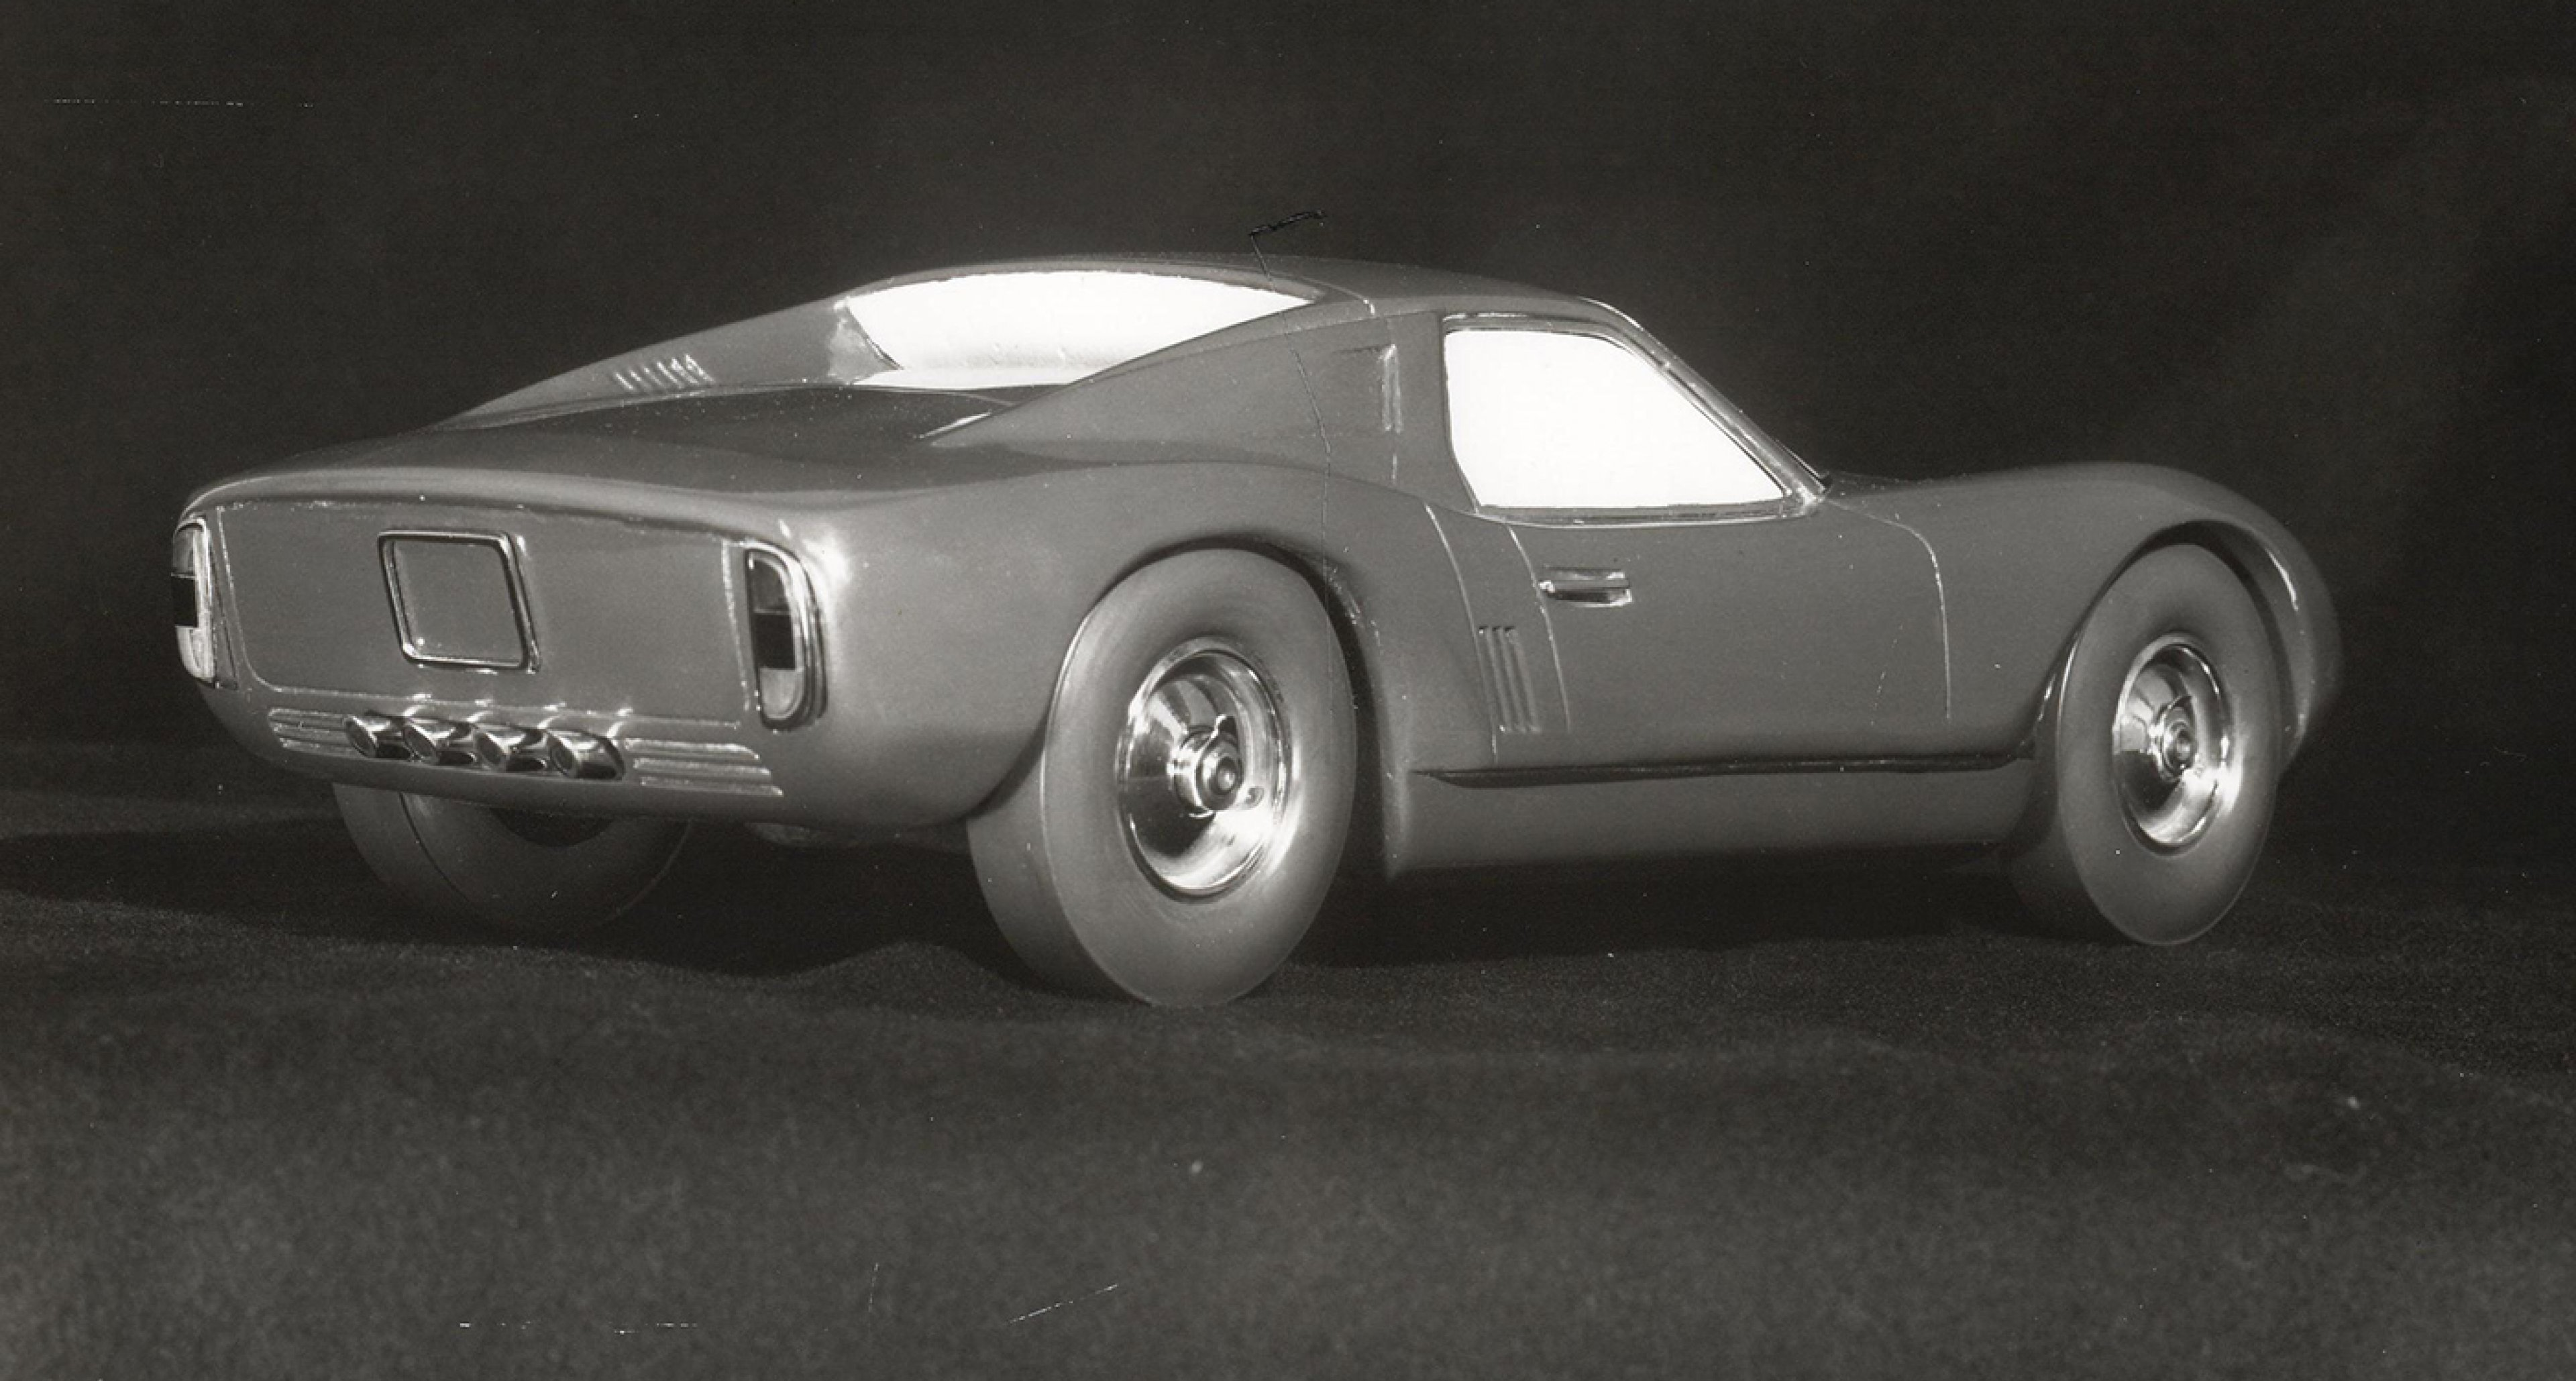 Was Carrozzeria Touring S Tigre Concept The Blueprint For The Miura